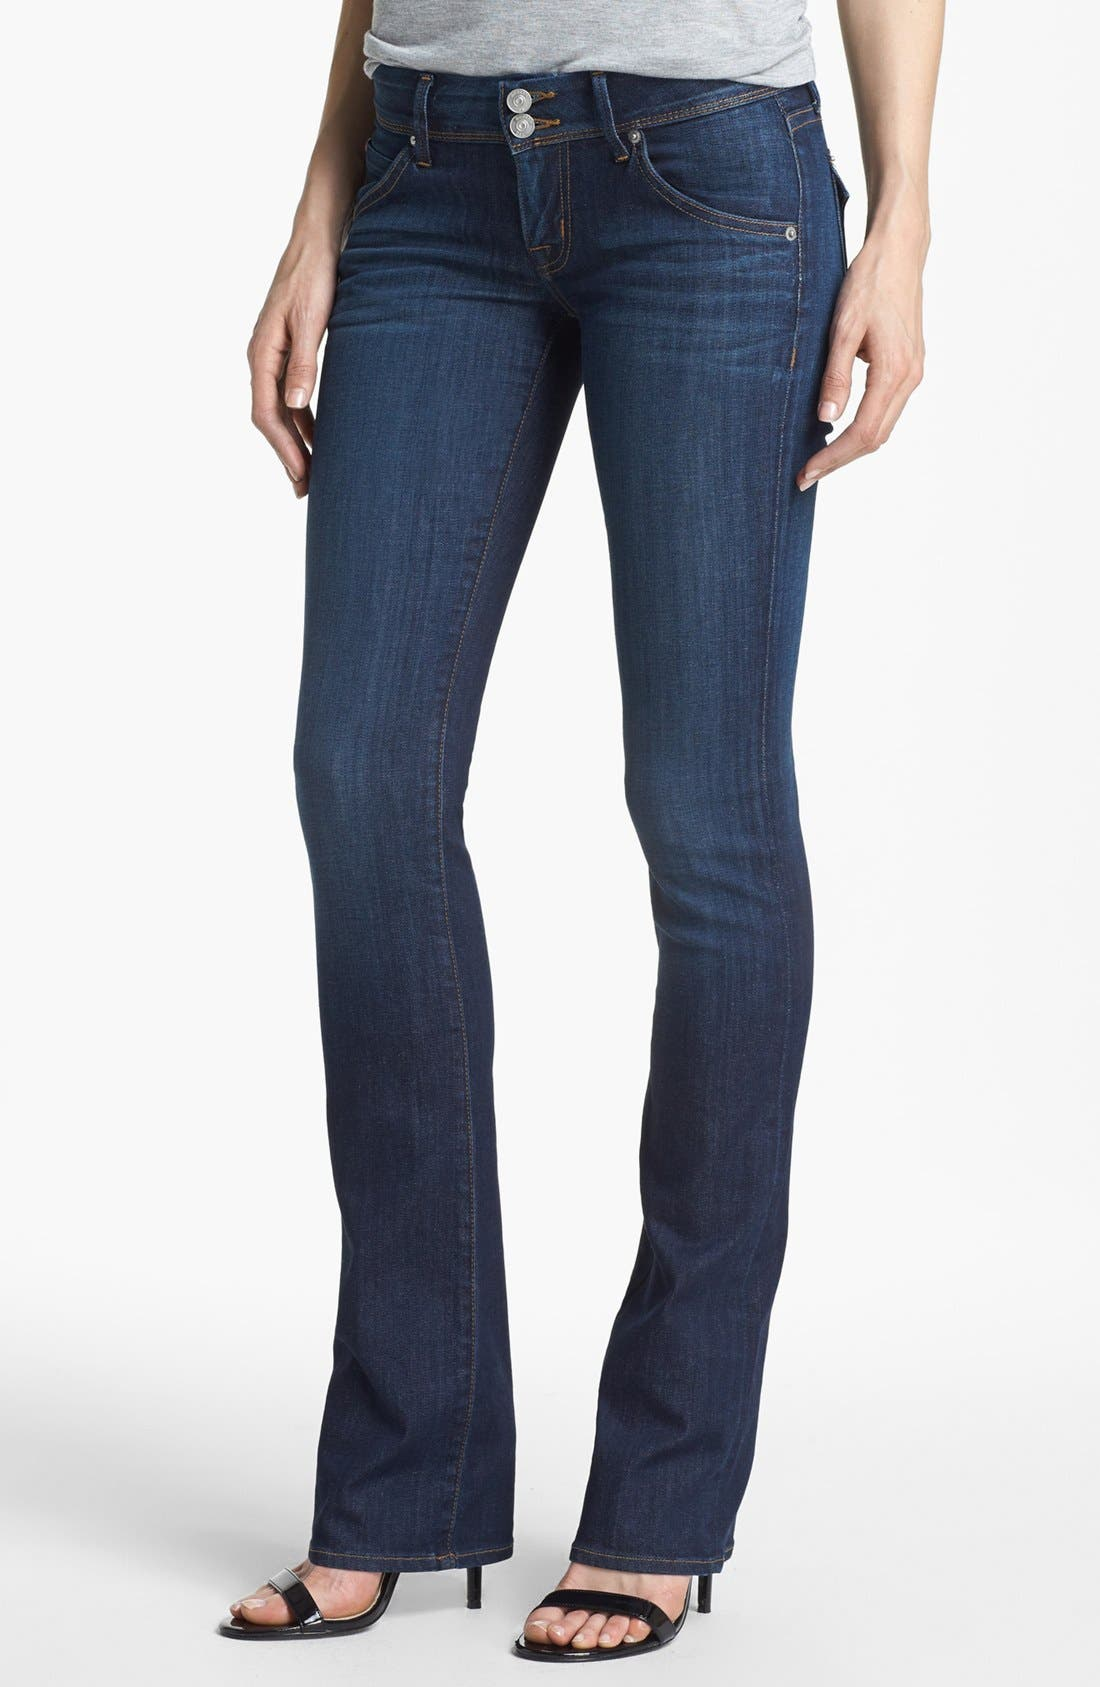 Alternate Image 1 Selected - Hudson Jeans 'Beth Supermodel' Baby Bootcut Jeans (Iconic)